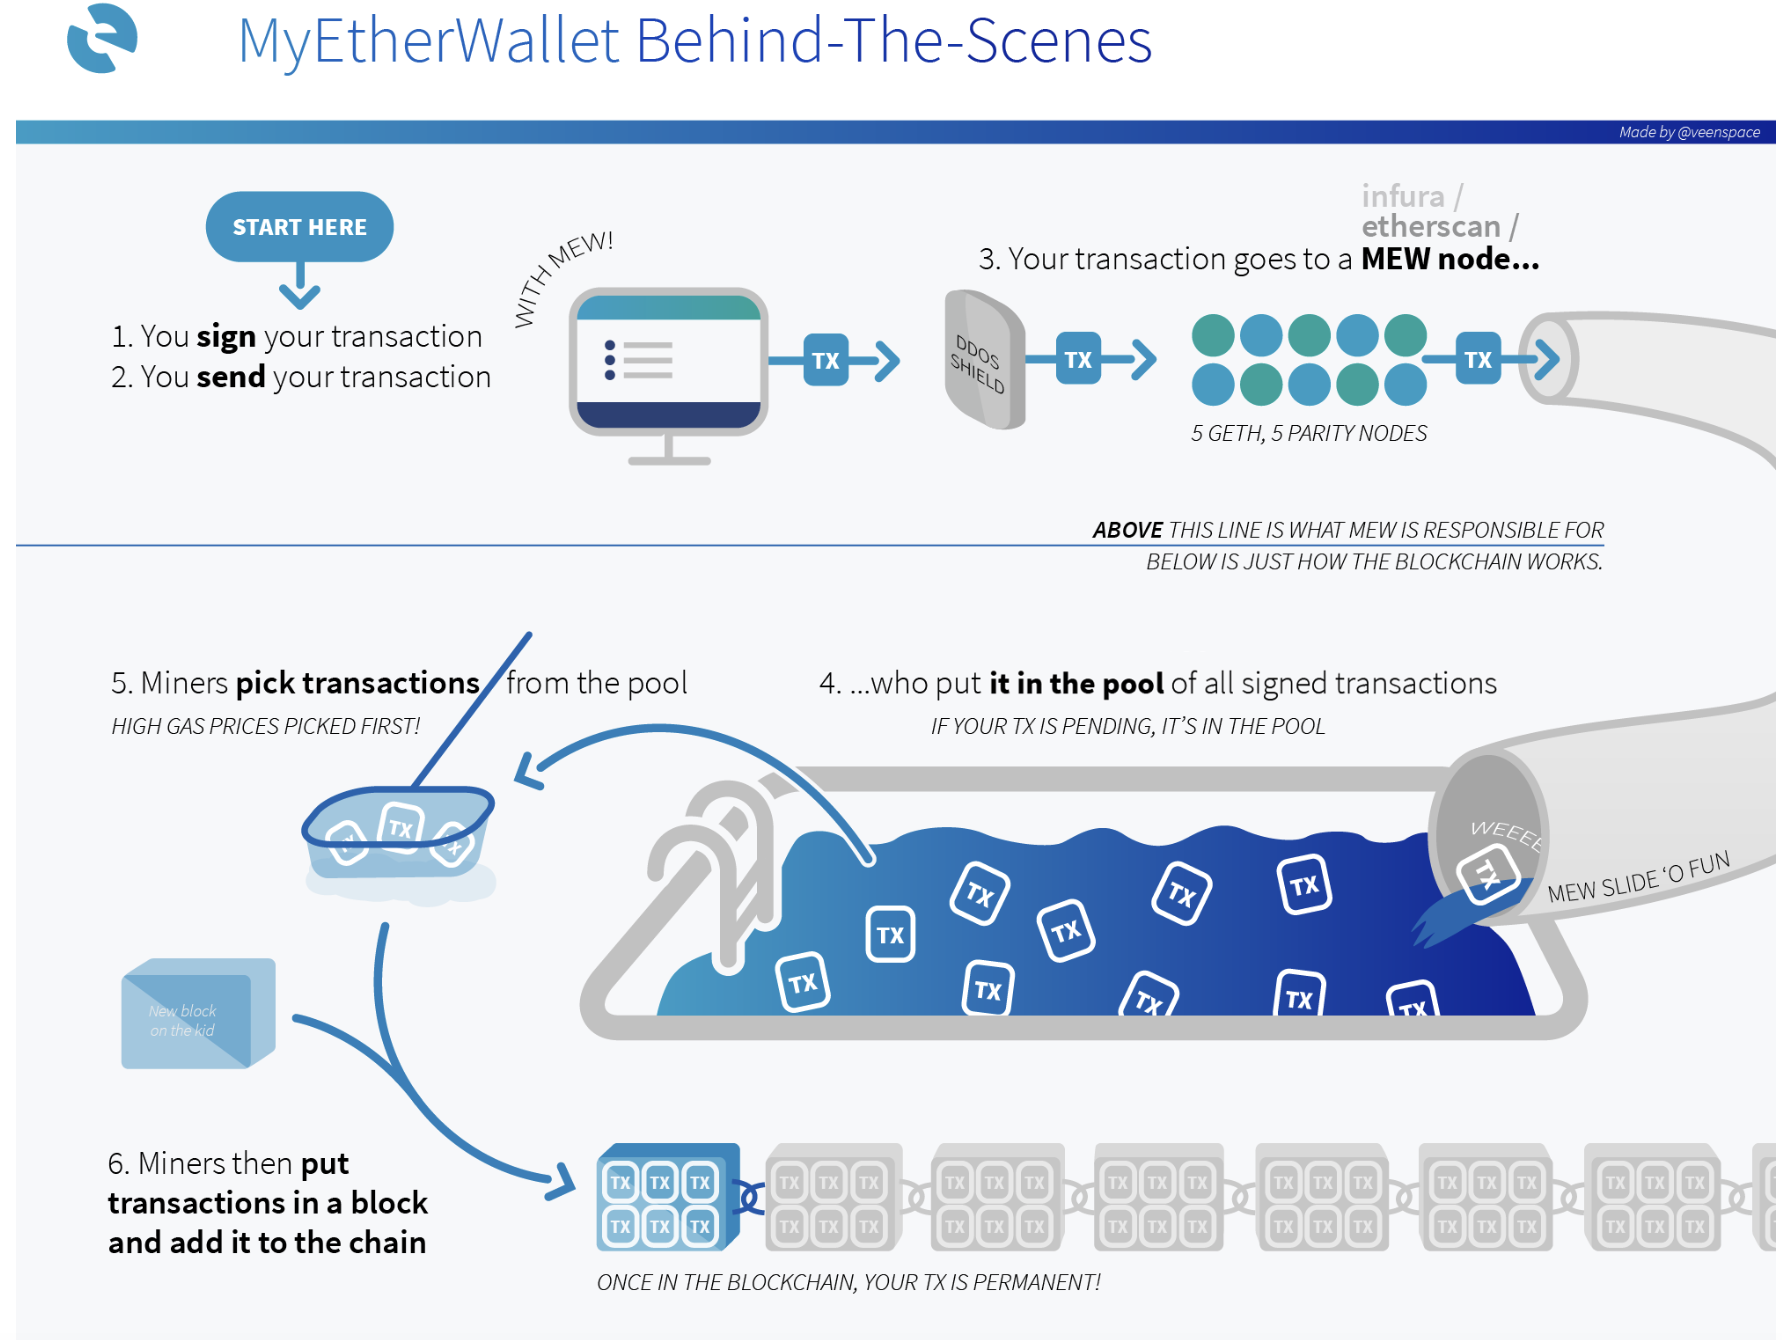 myether web wallet